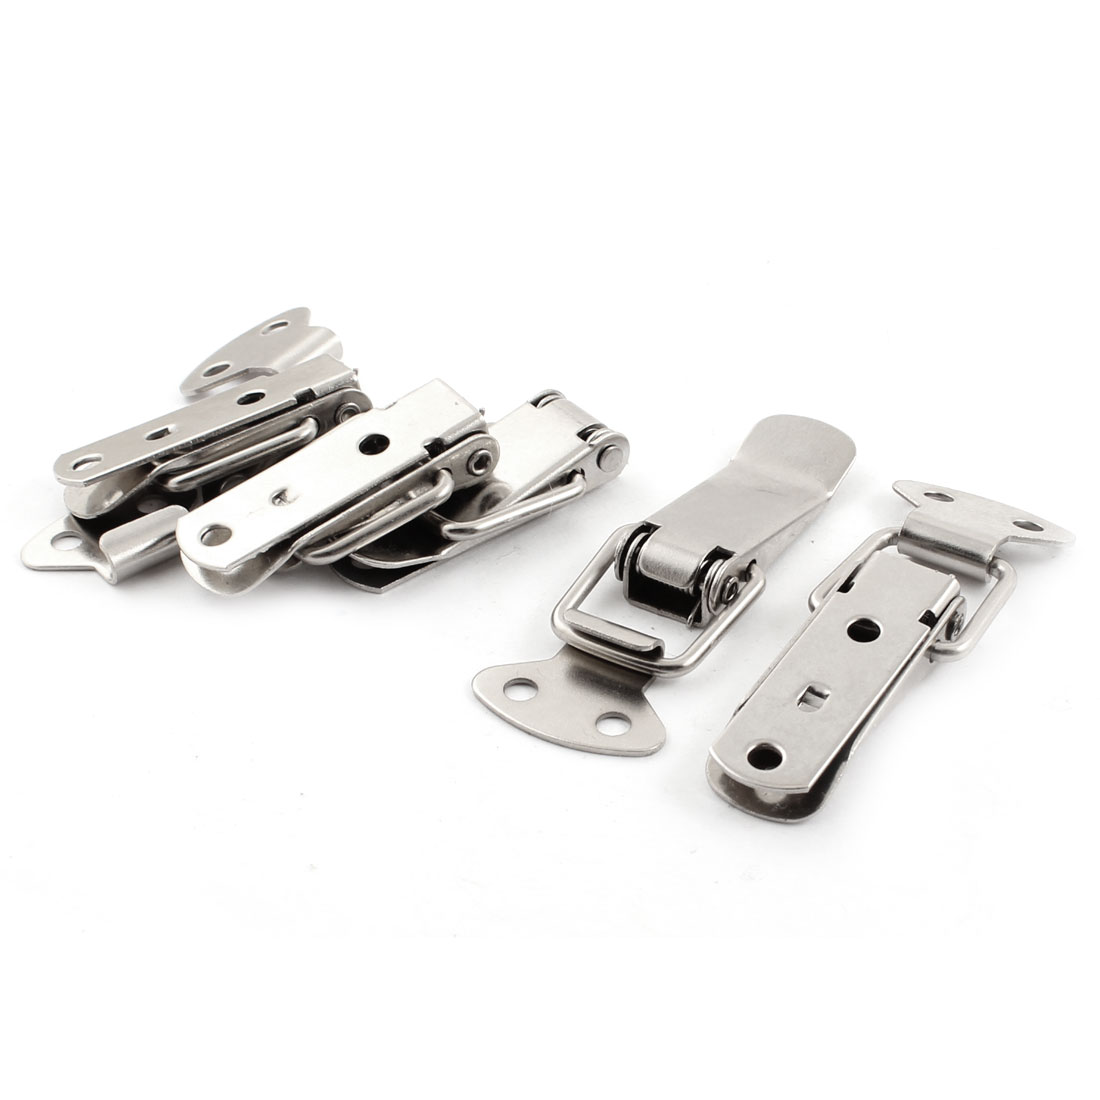 "5Pcs Case Box Locking 1.7"" Long Metal Toggle Latch Hasp w Strike Set"